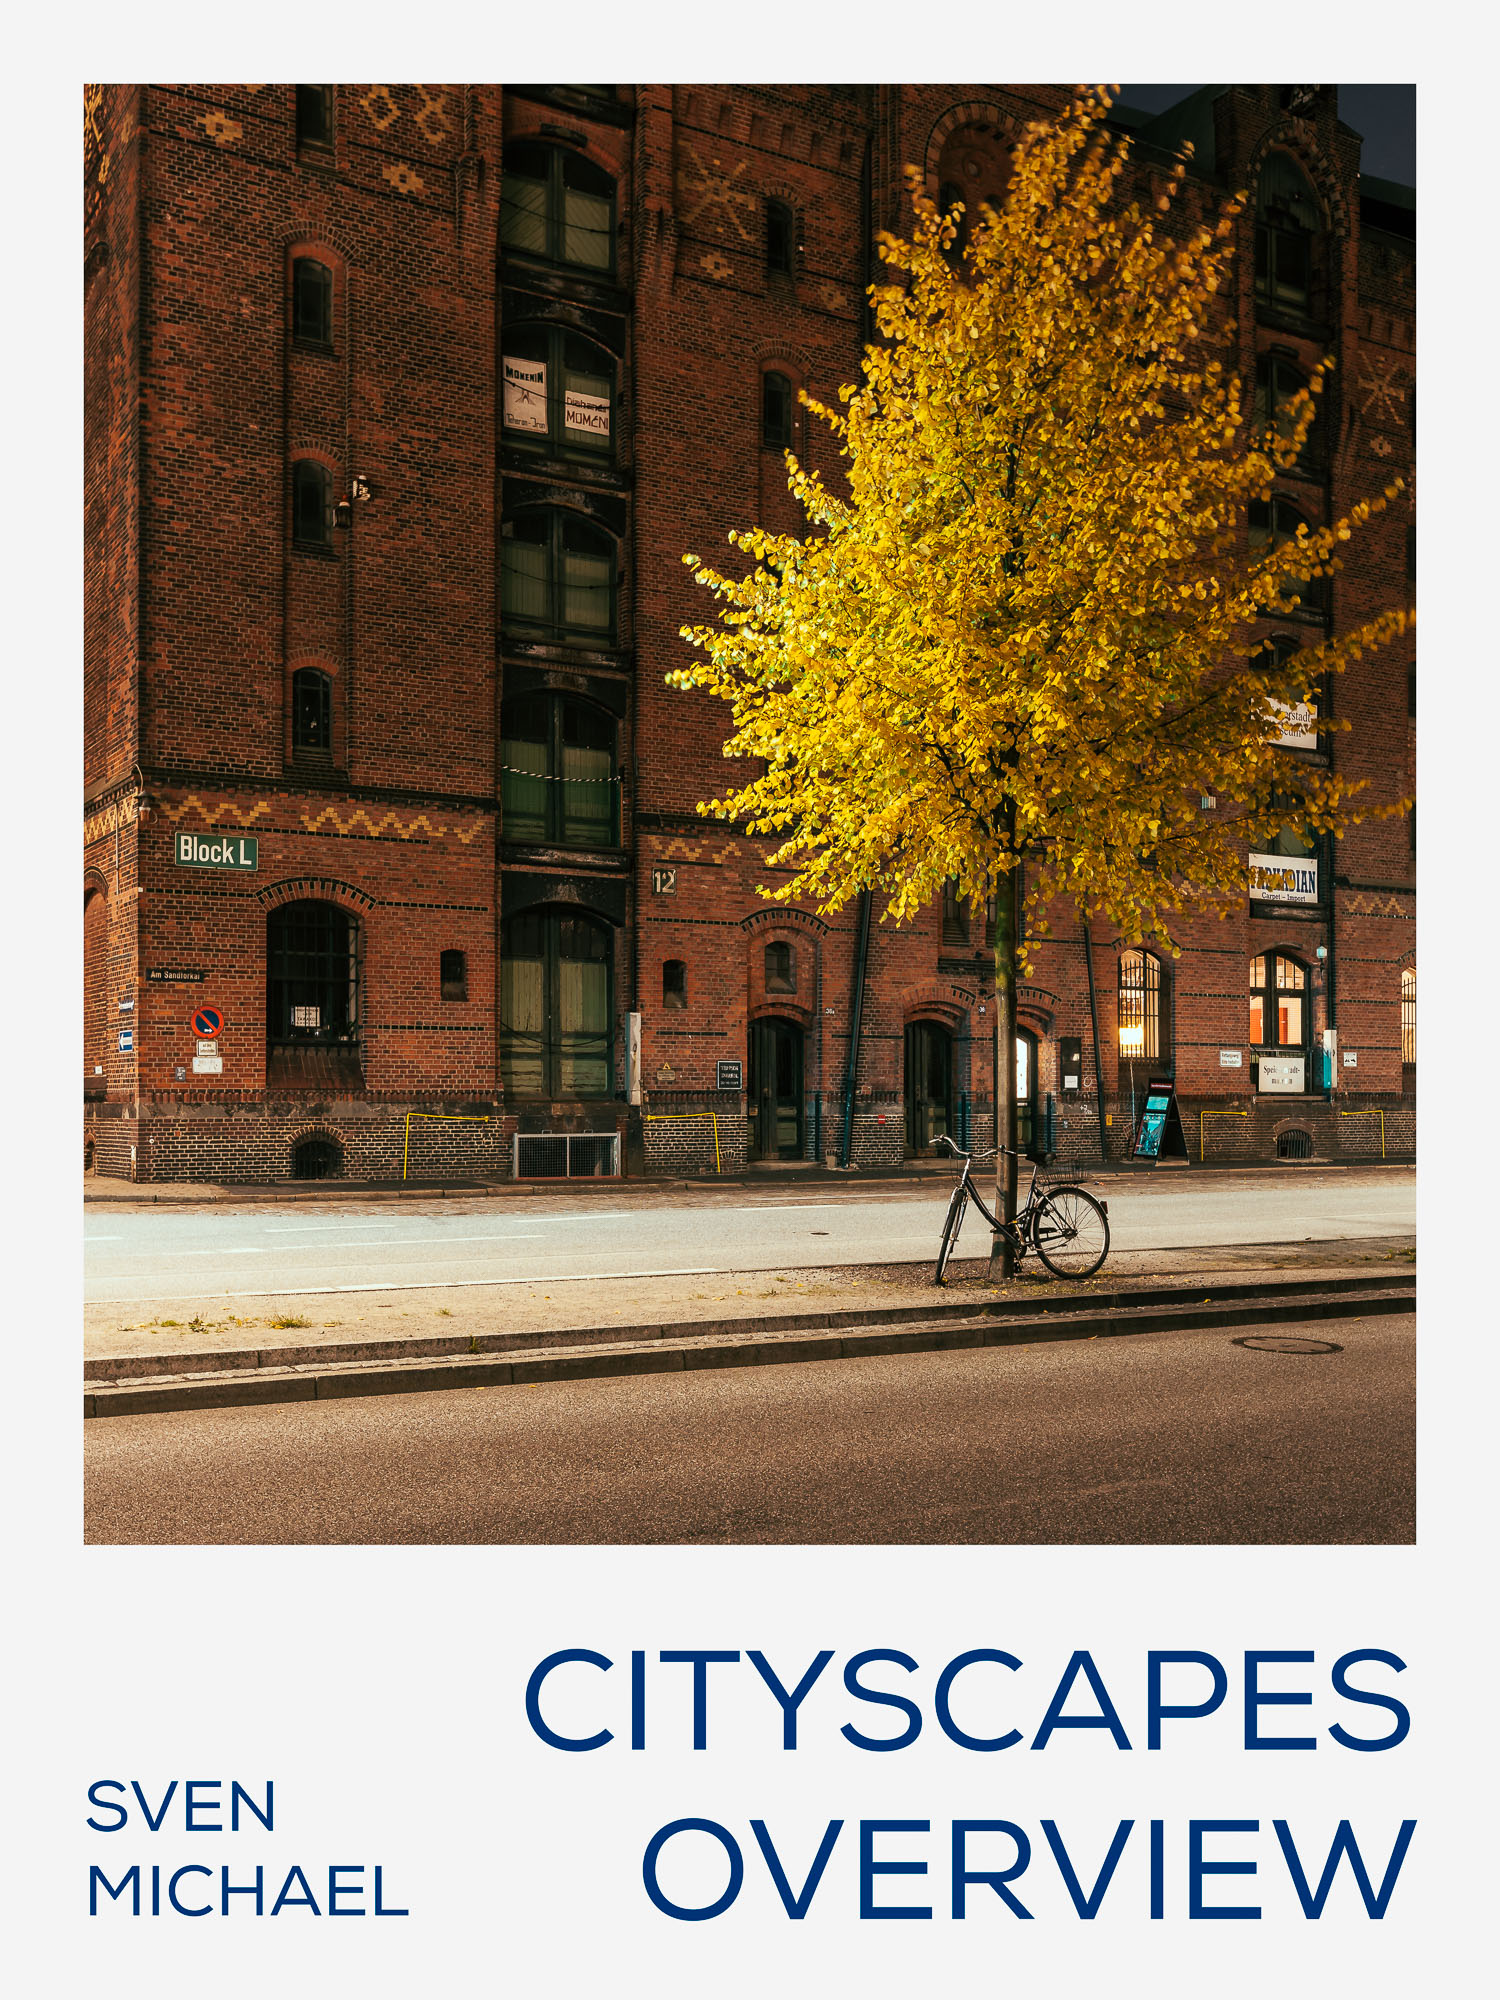 Cityscapes Overview